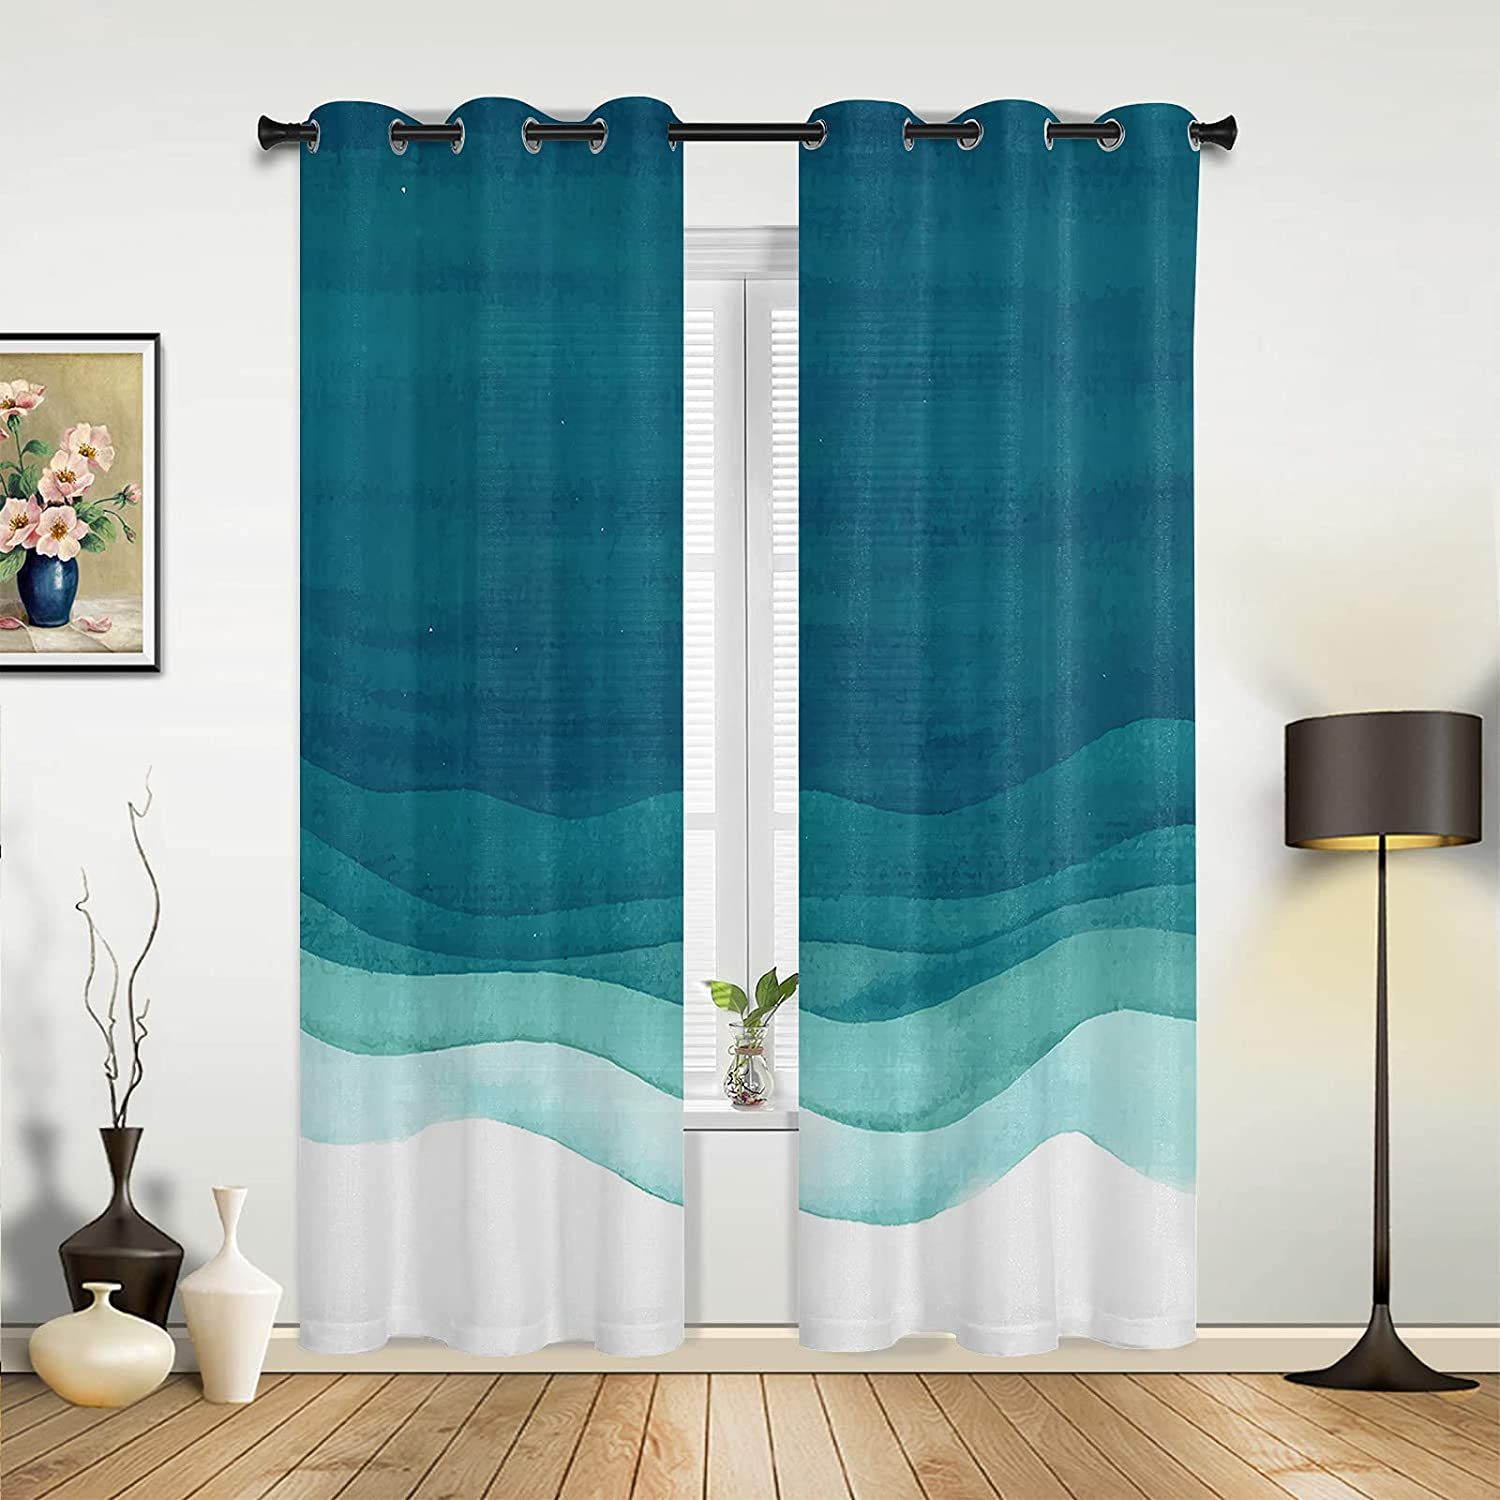 Window Sheer Curtains for Bedroom Whit Room Blue Award-winning store Living Gradient Today's only